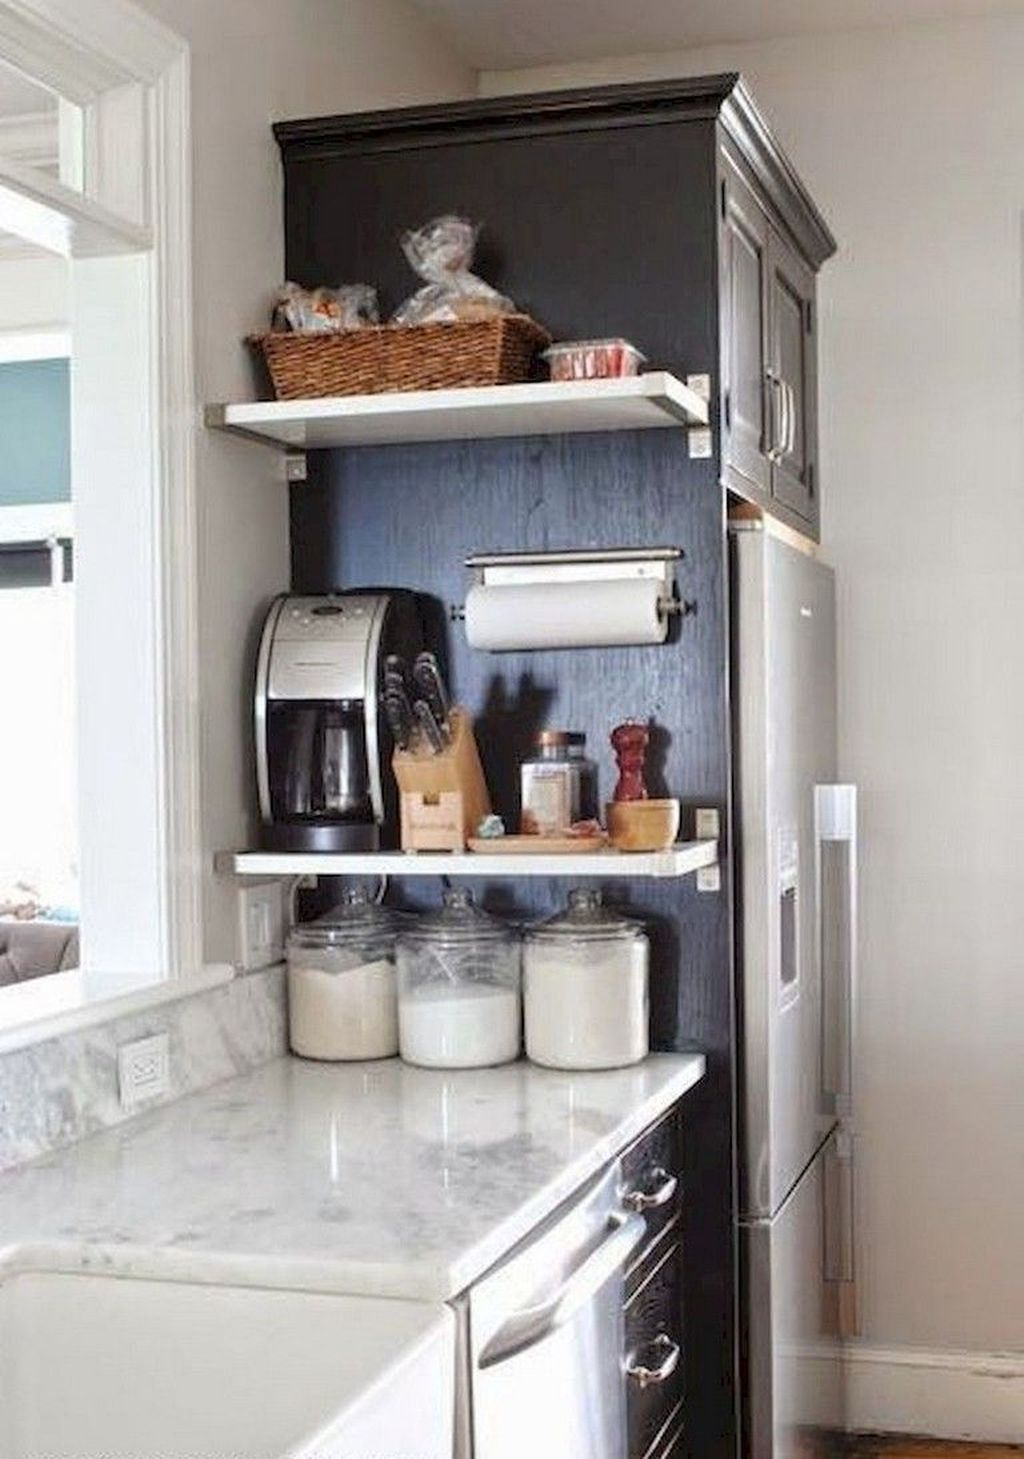 46 Adorable Kitchen Organization Ideas For Small Apartment In 2020